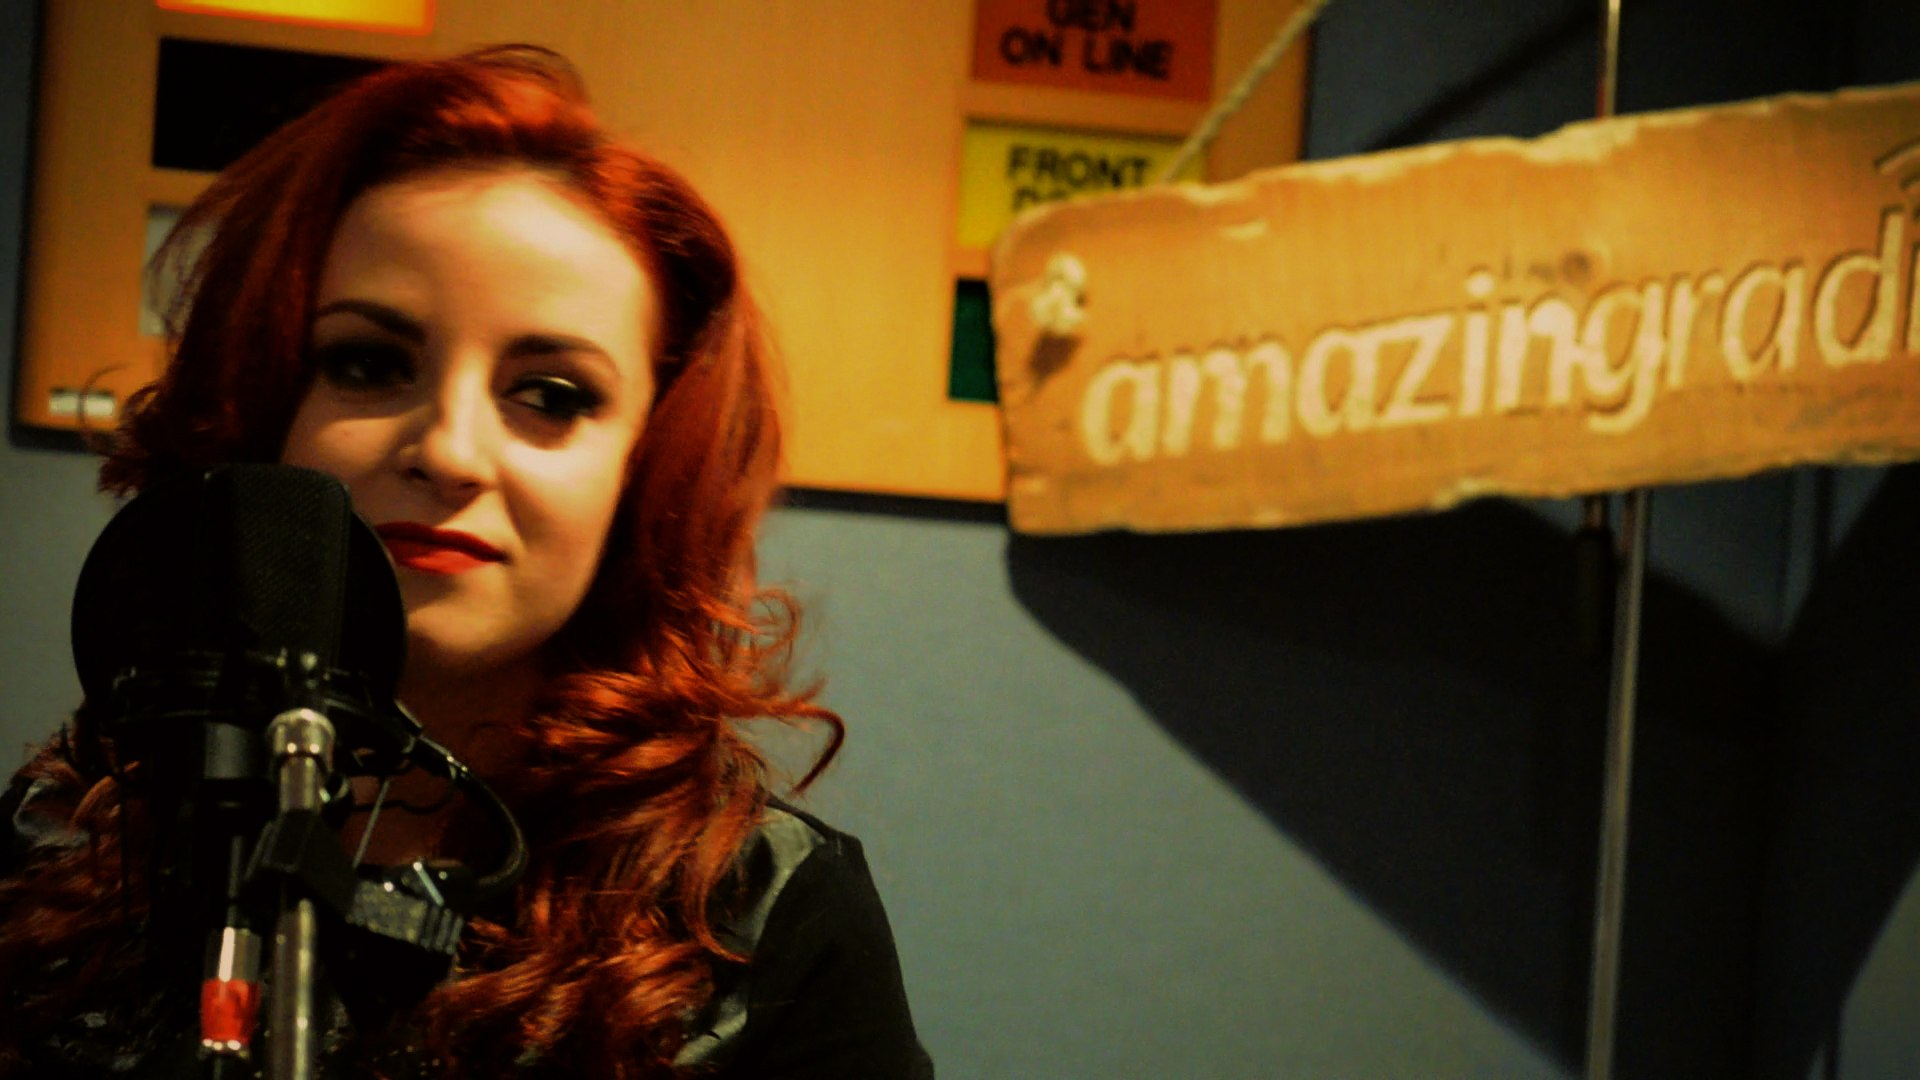 Beth Macari performing an acoustic session at Amazing Radio